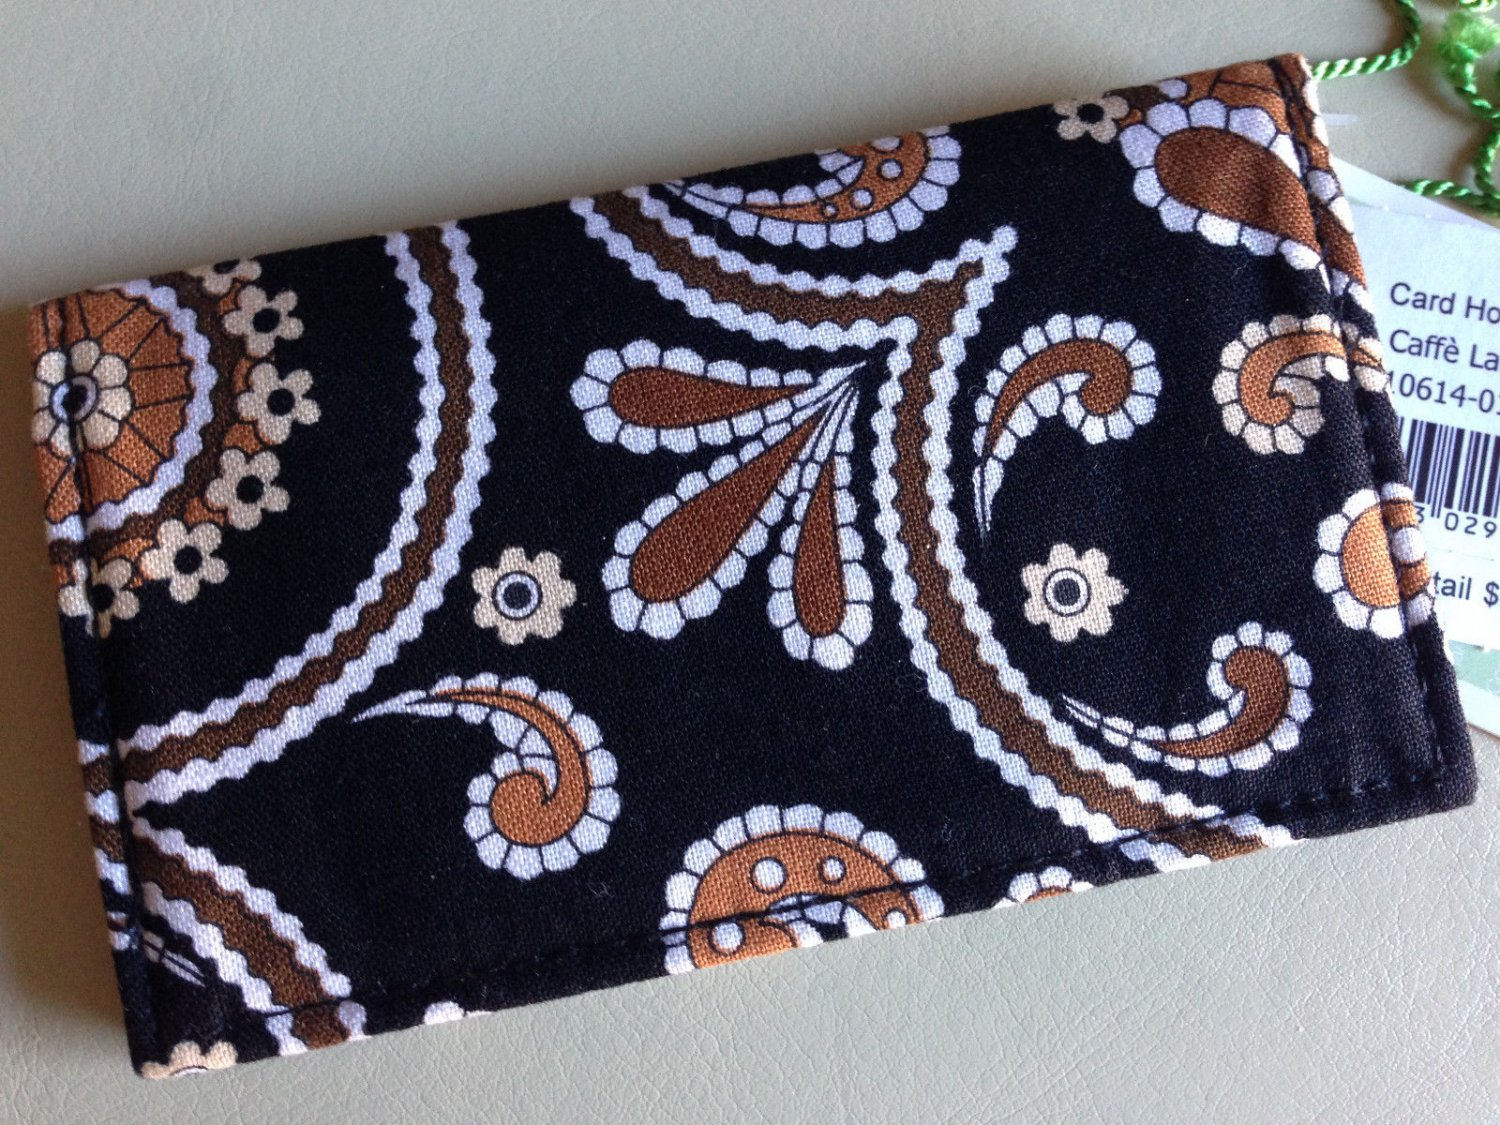 Vera Bradley Card holder Caffe Latte  business ID credit card case  Retired NWT